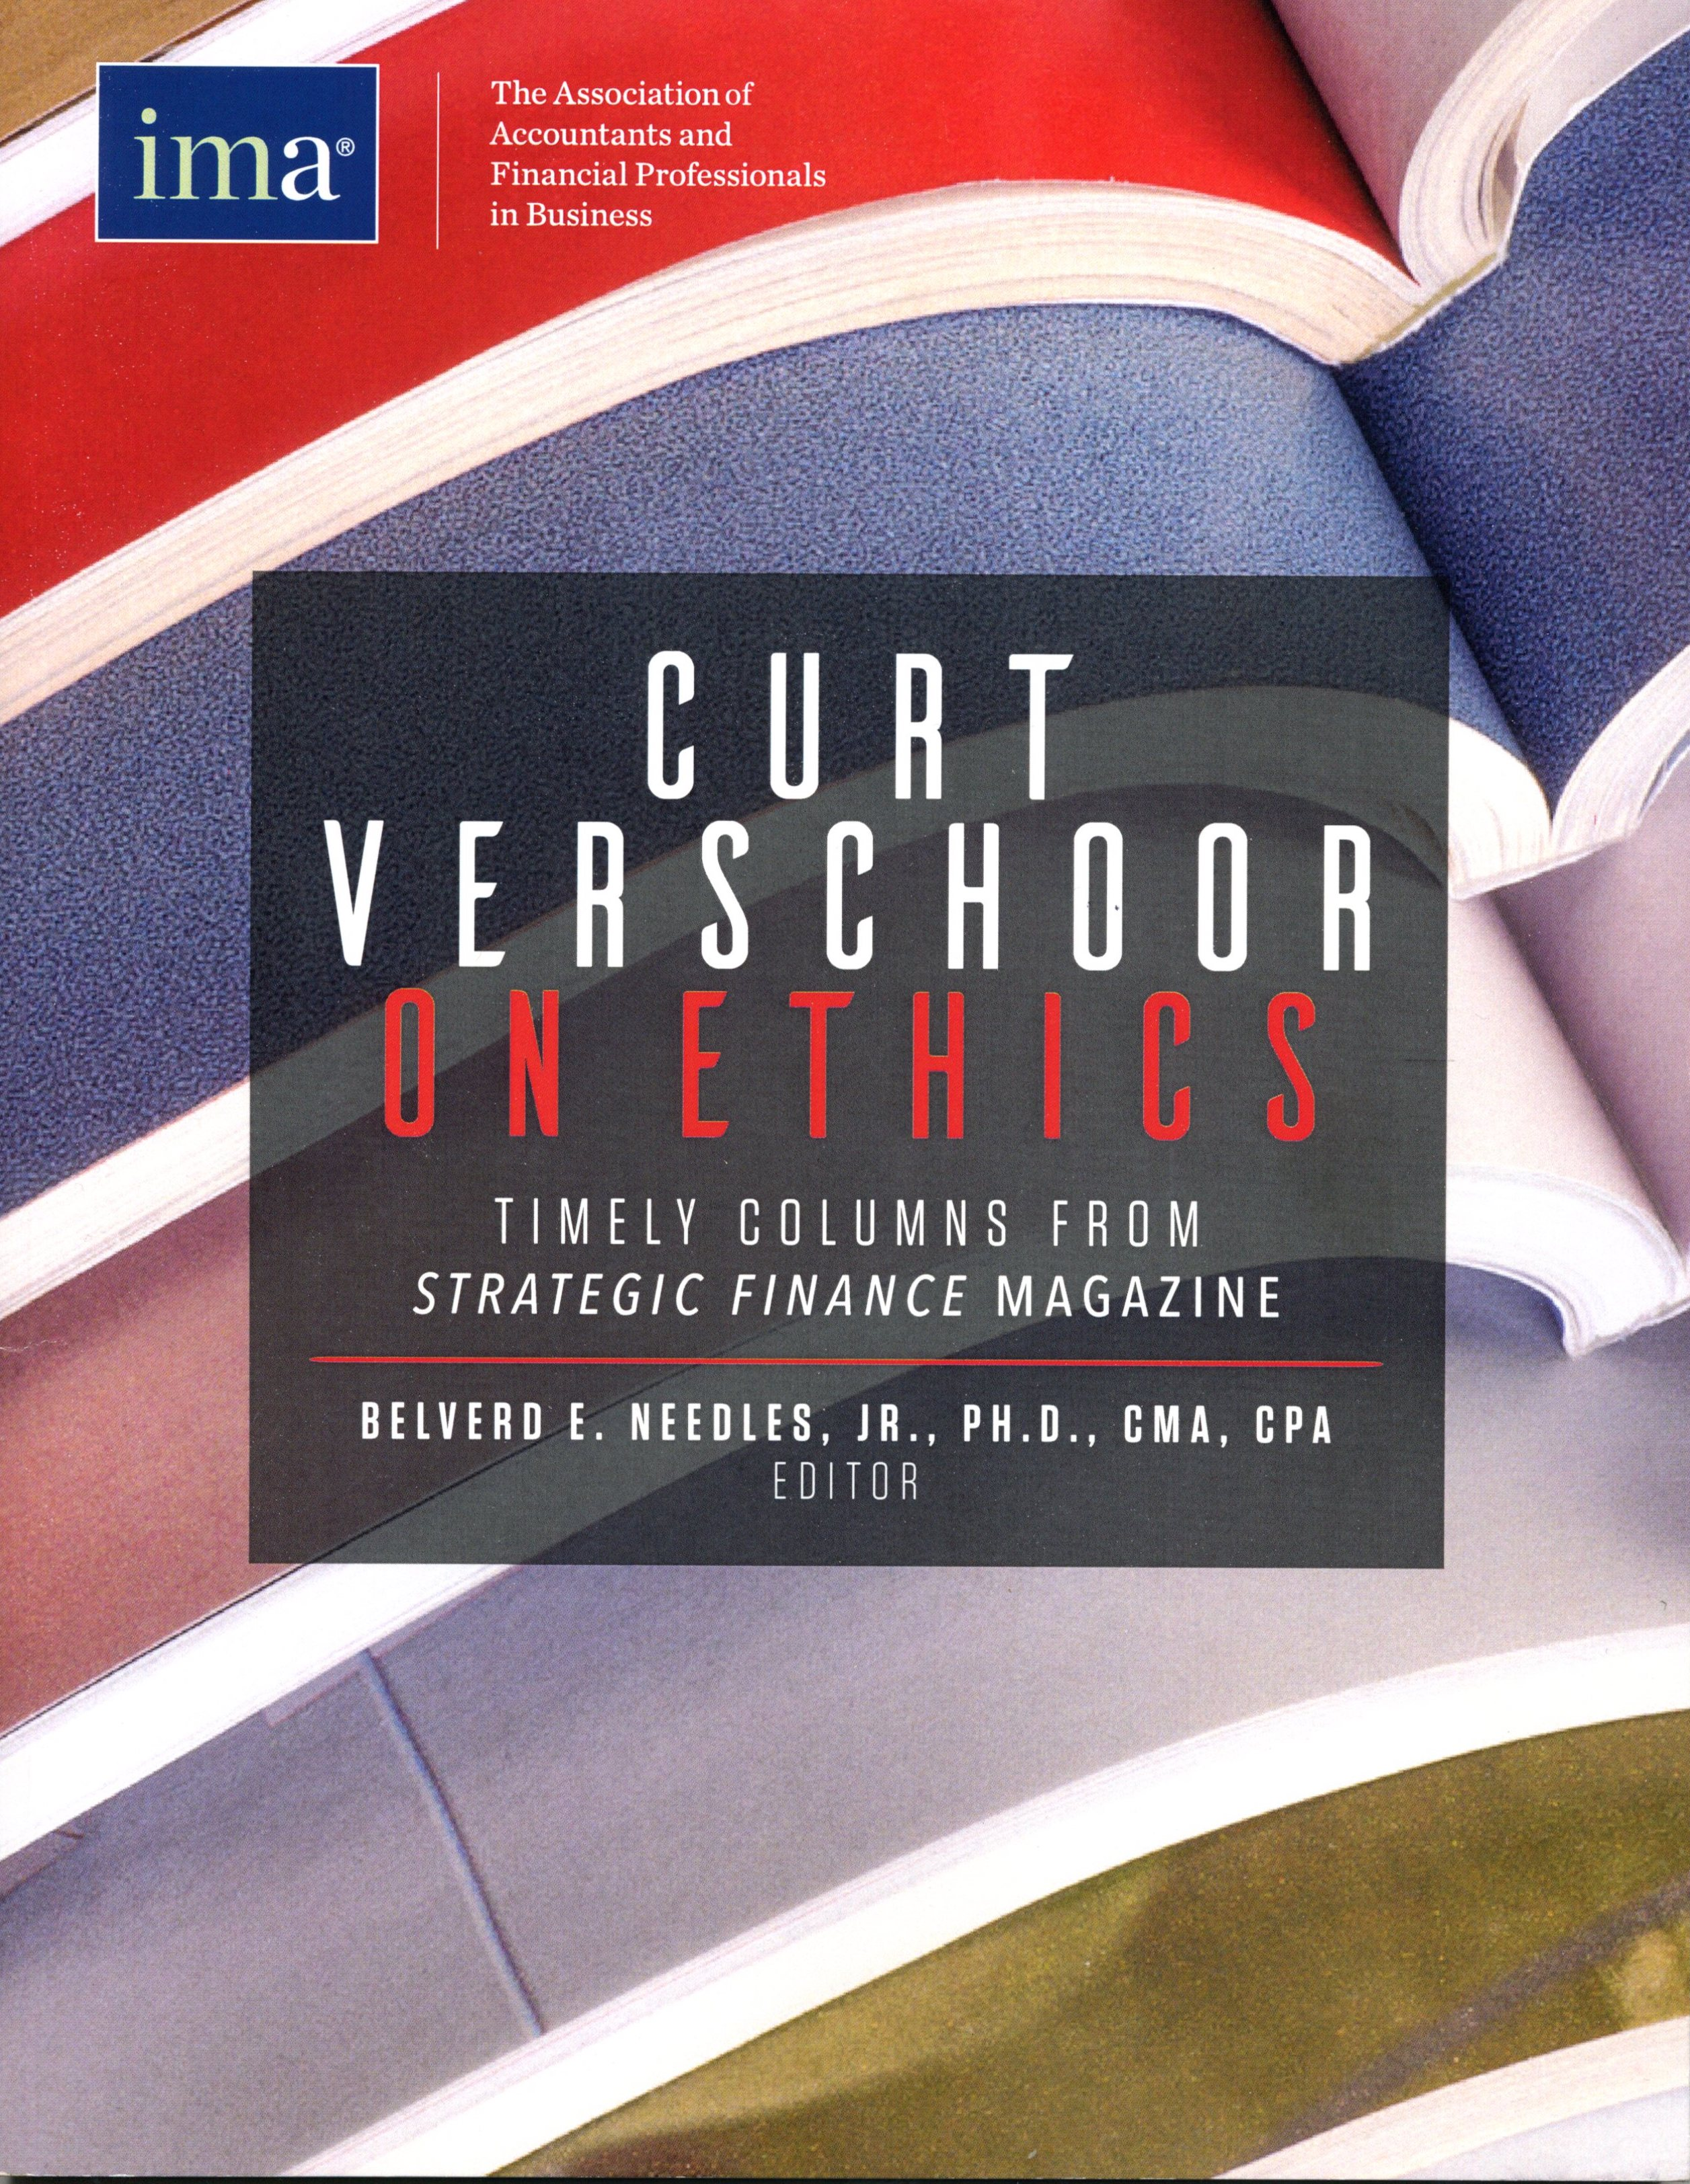 Curt Verschoor On Ethics: Timely Columns from Strategic Finance Magazine